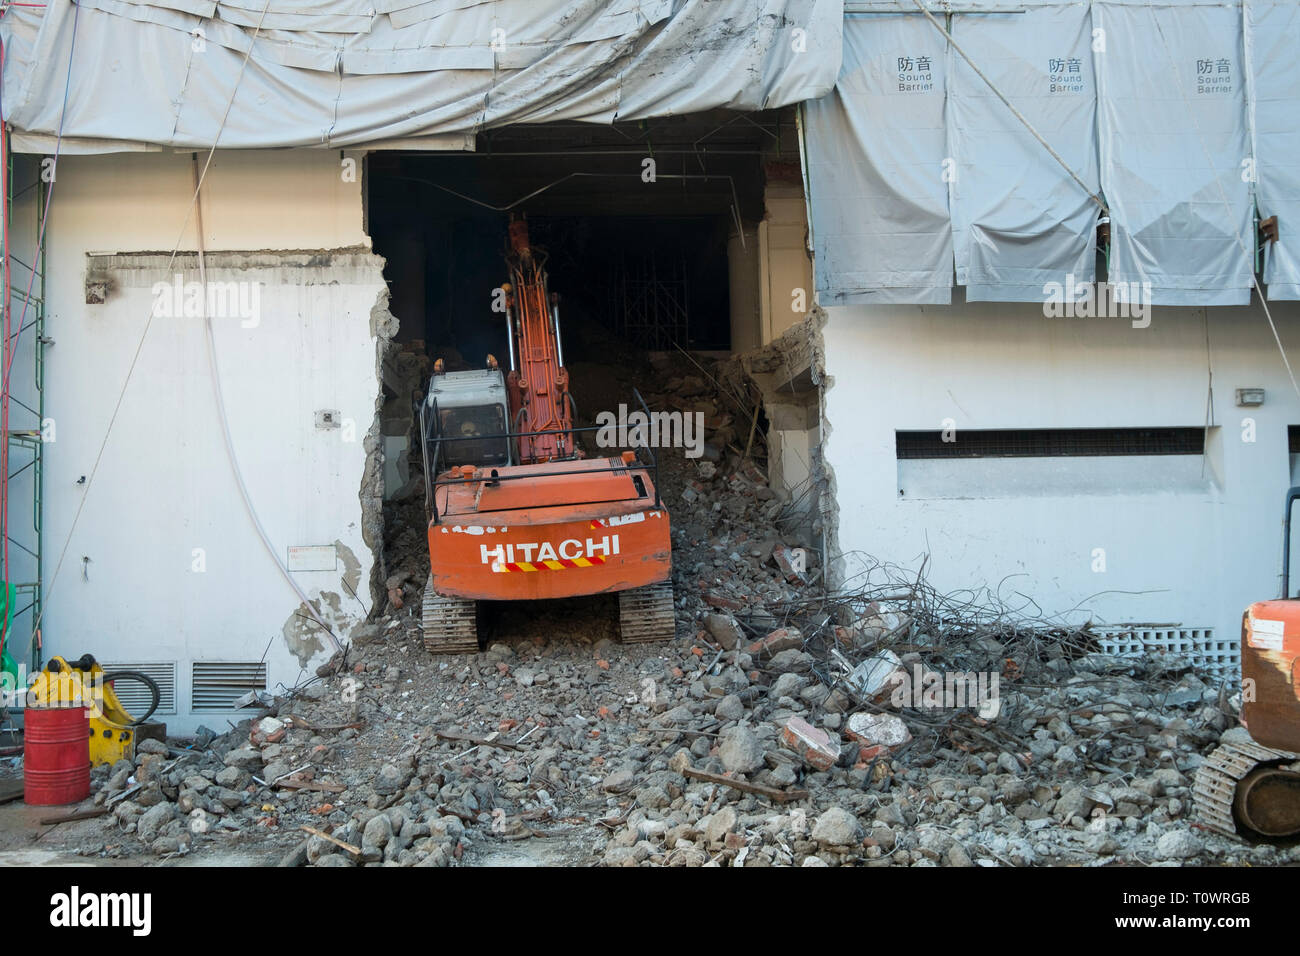 An orange excavator busy clearing out a building being renovated in Kota Kinabalu, Sabah, Borneo, Malaysia. - Stock Image